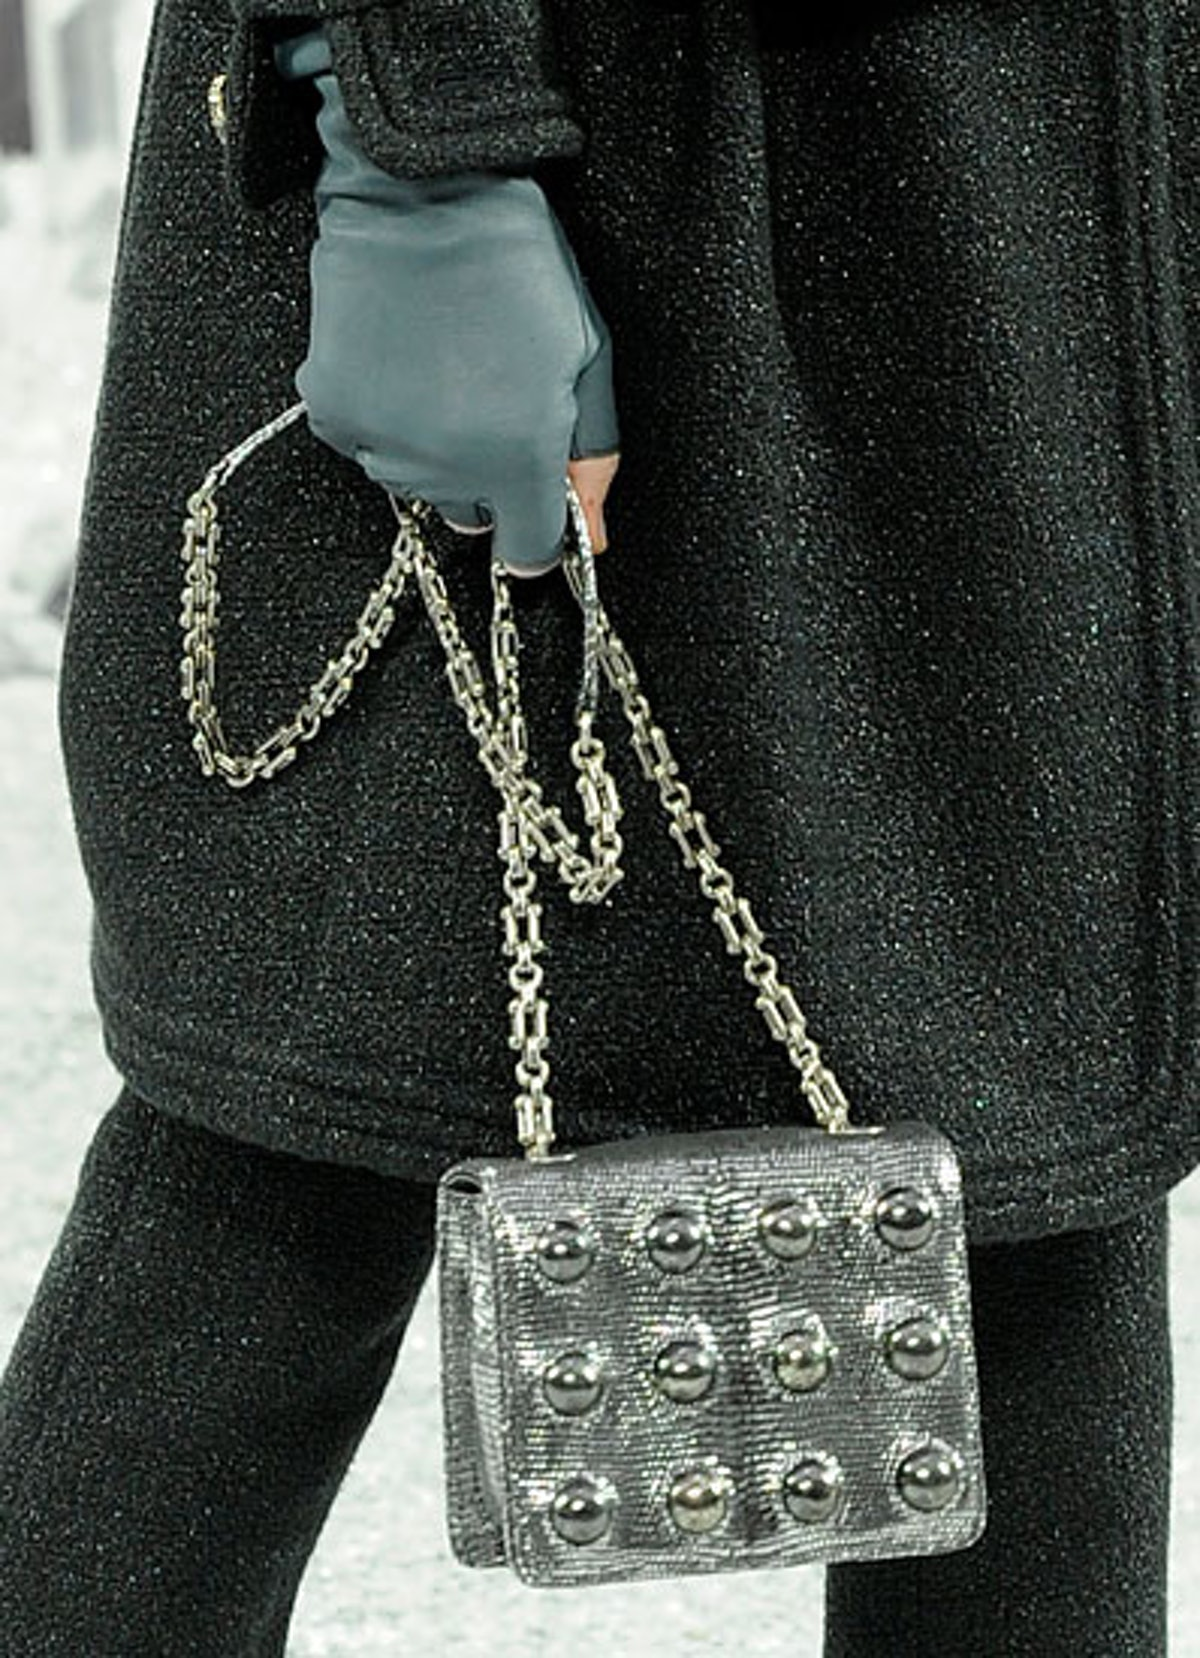 acss-fall-2012-accessories-roundup-07-v.jpg